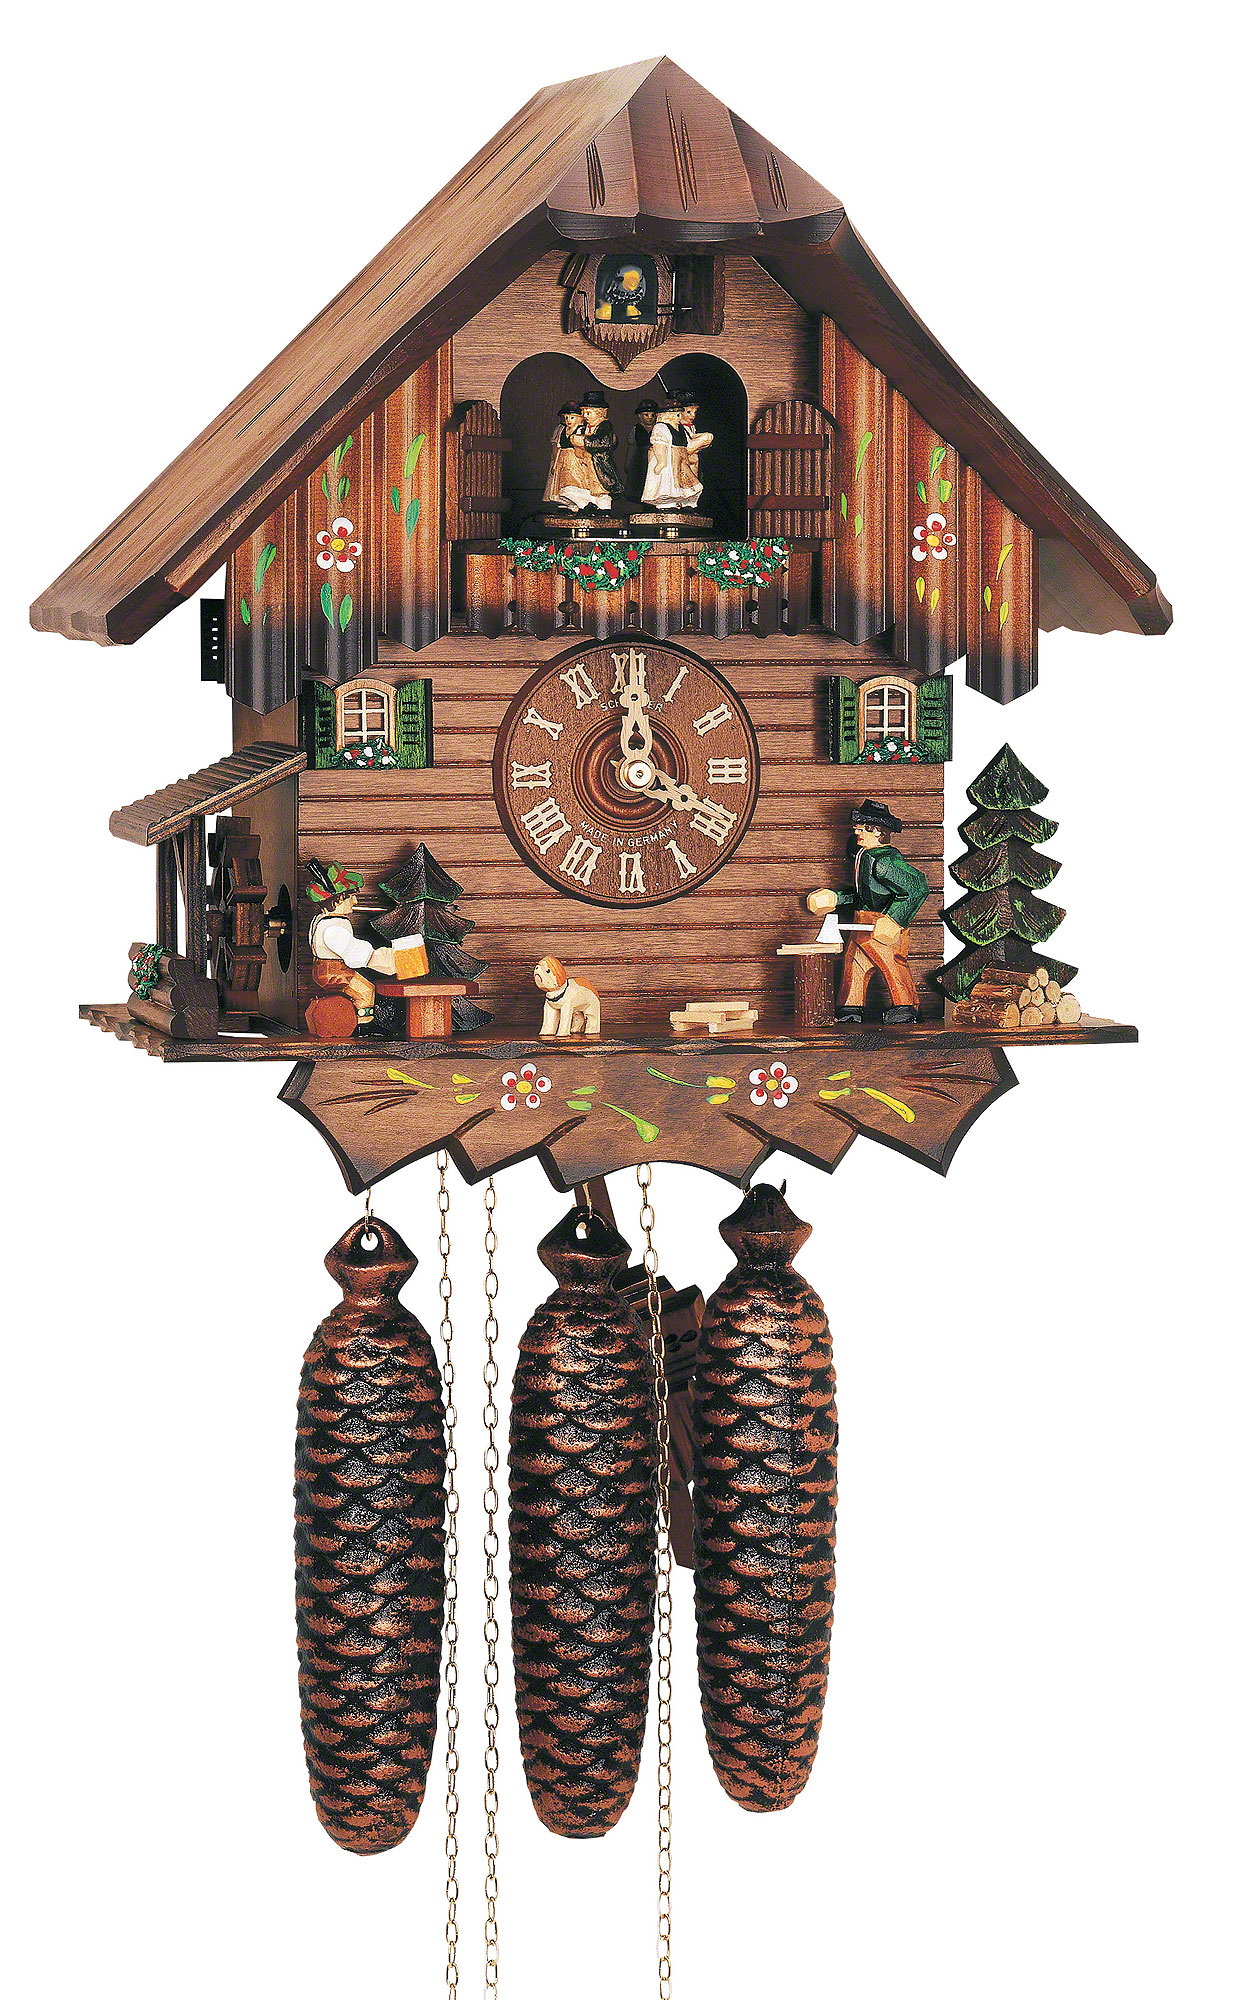 Cuckoo Clocks Switzerland Cuckoo Clock 8-day-movement